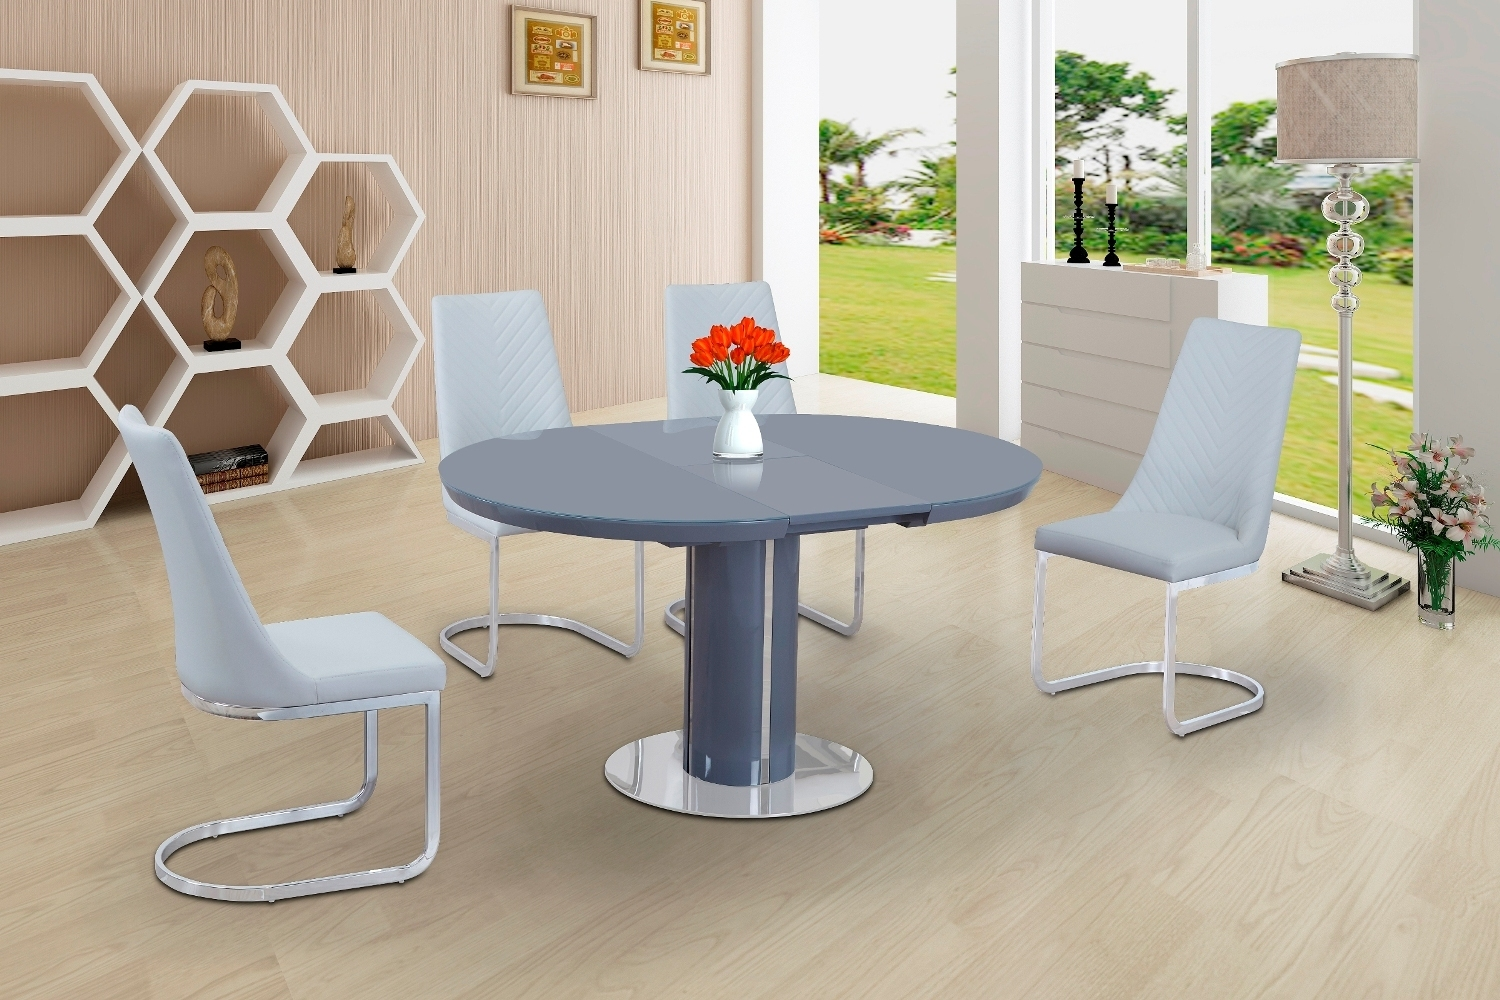 Round Grey Glass High Gloss Dining Table And 4 White Chairs